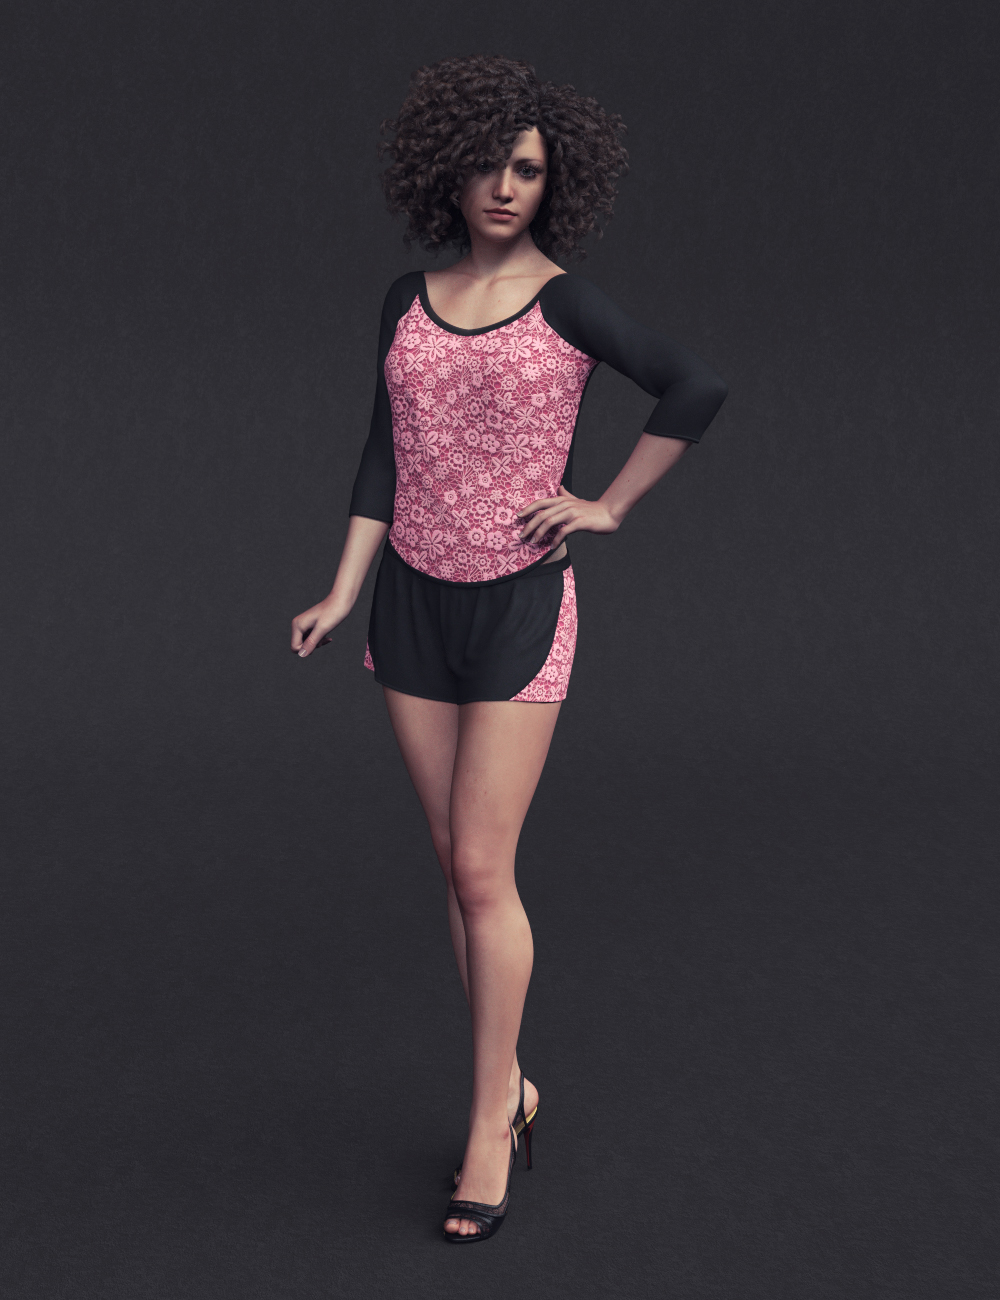 dForce Lace Sleep Wear Outfit for Genesis 8 Female(s) by: Sprite, 3D Models by Daz 3D